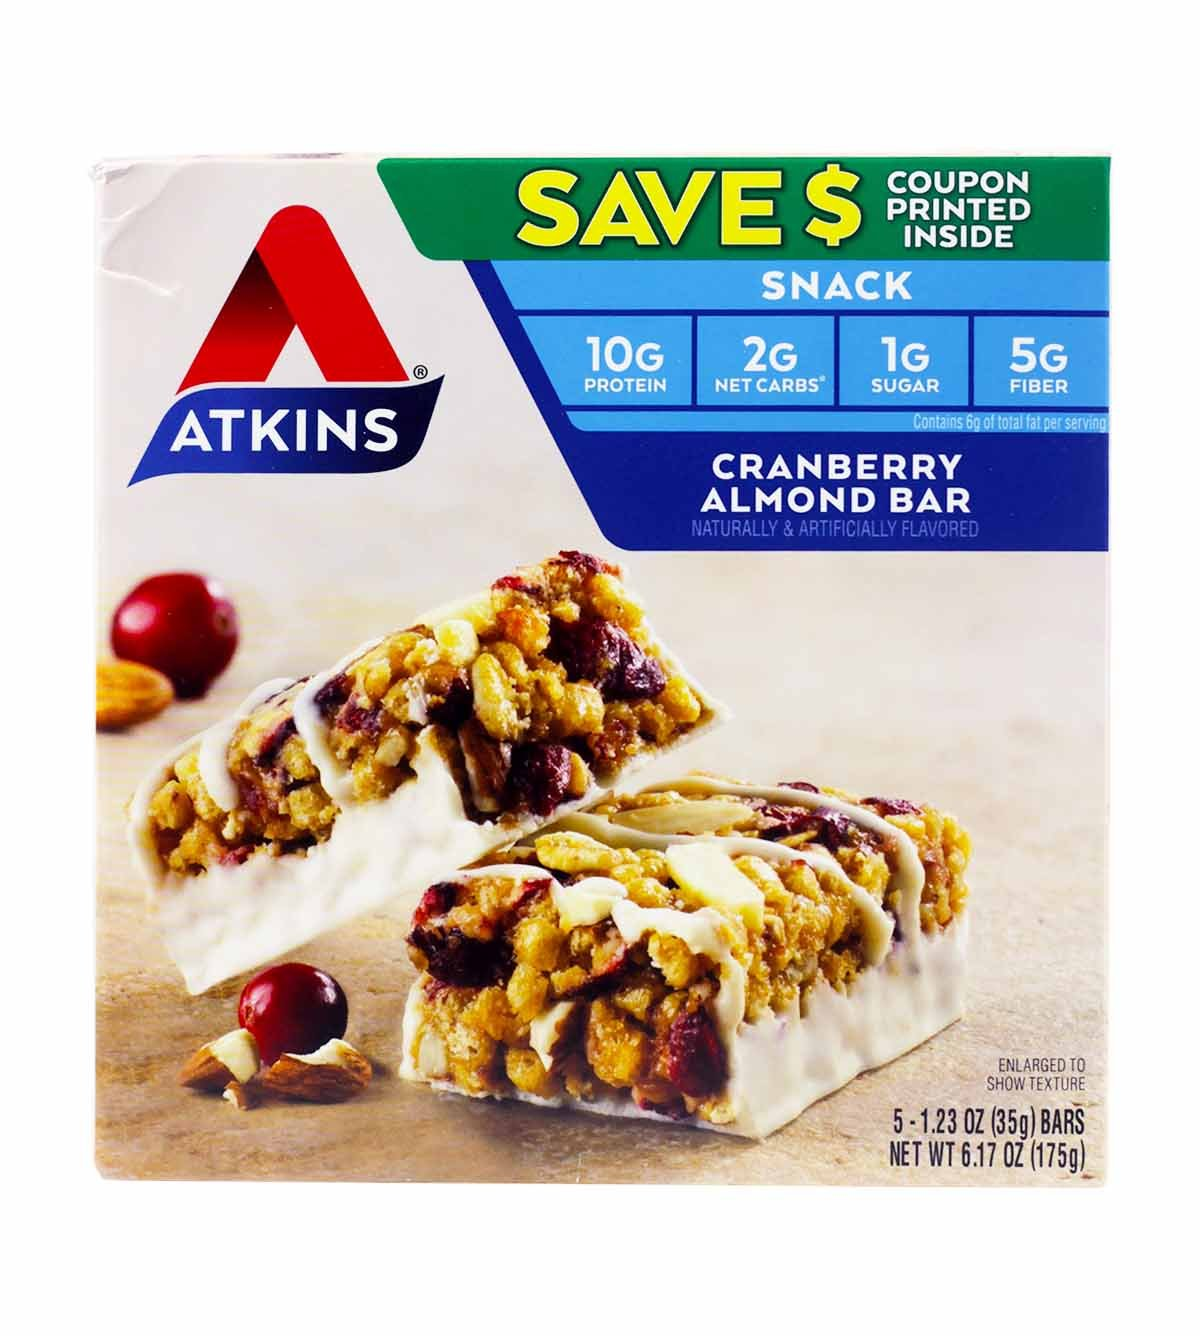 Atkins Cranberry Almond Bar 3 Boxes of 5 Bars (15 total bars) by Atkins